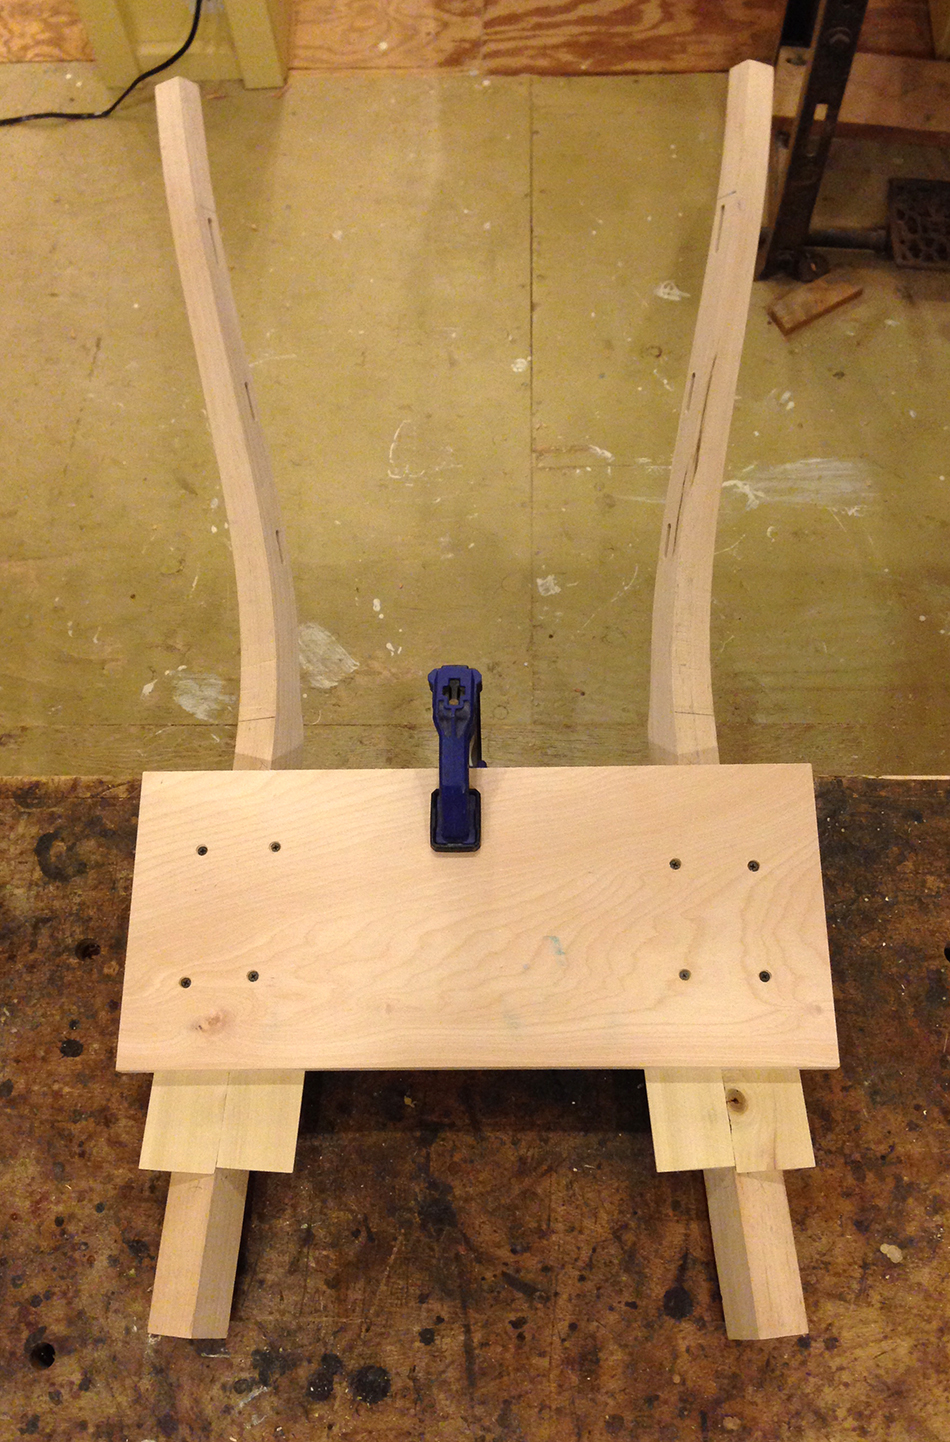 This jig holds the rear legs in the same position the legs will occupy in the finished chair